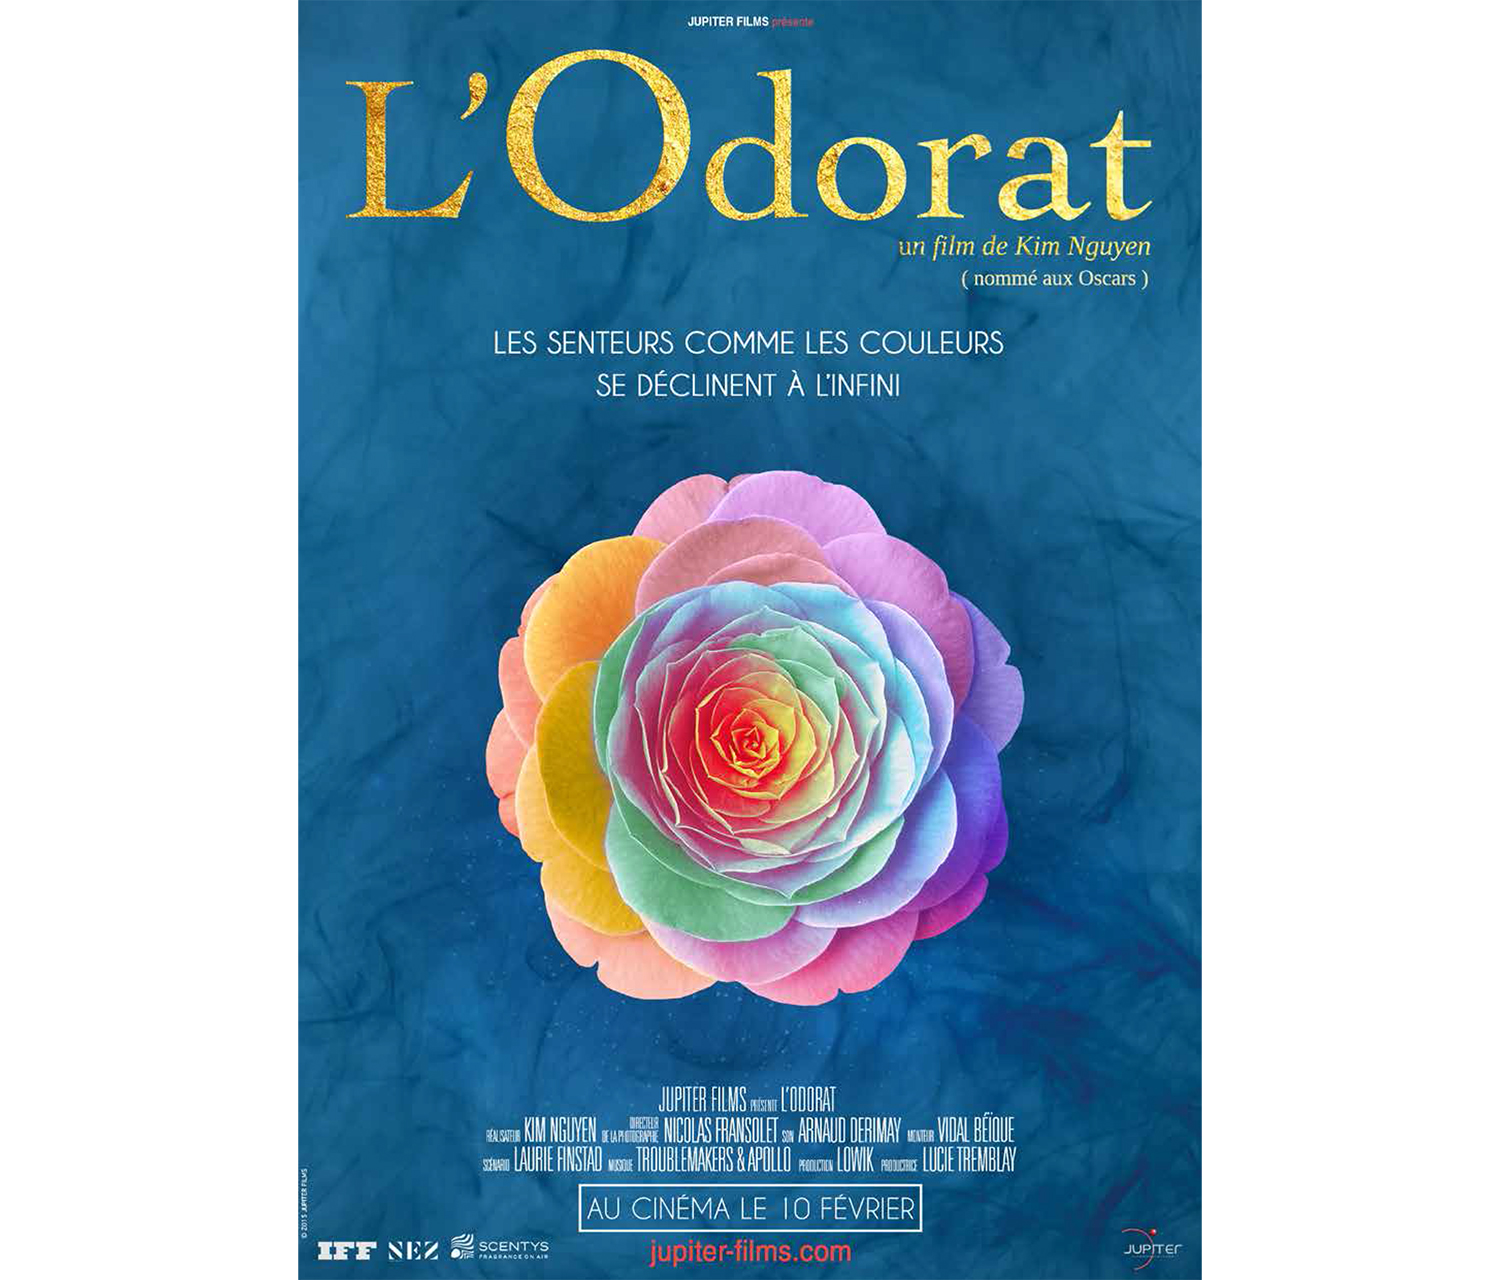 « L'Odorat », film documentaire de Kim Nguyen